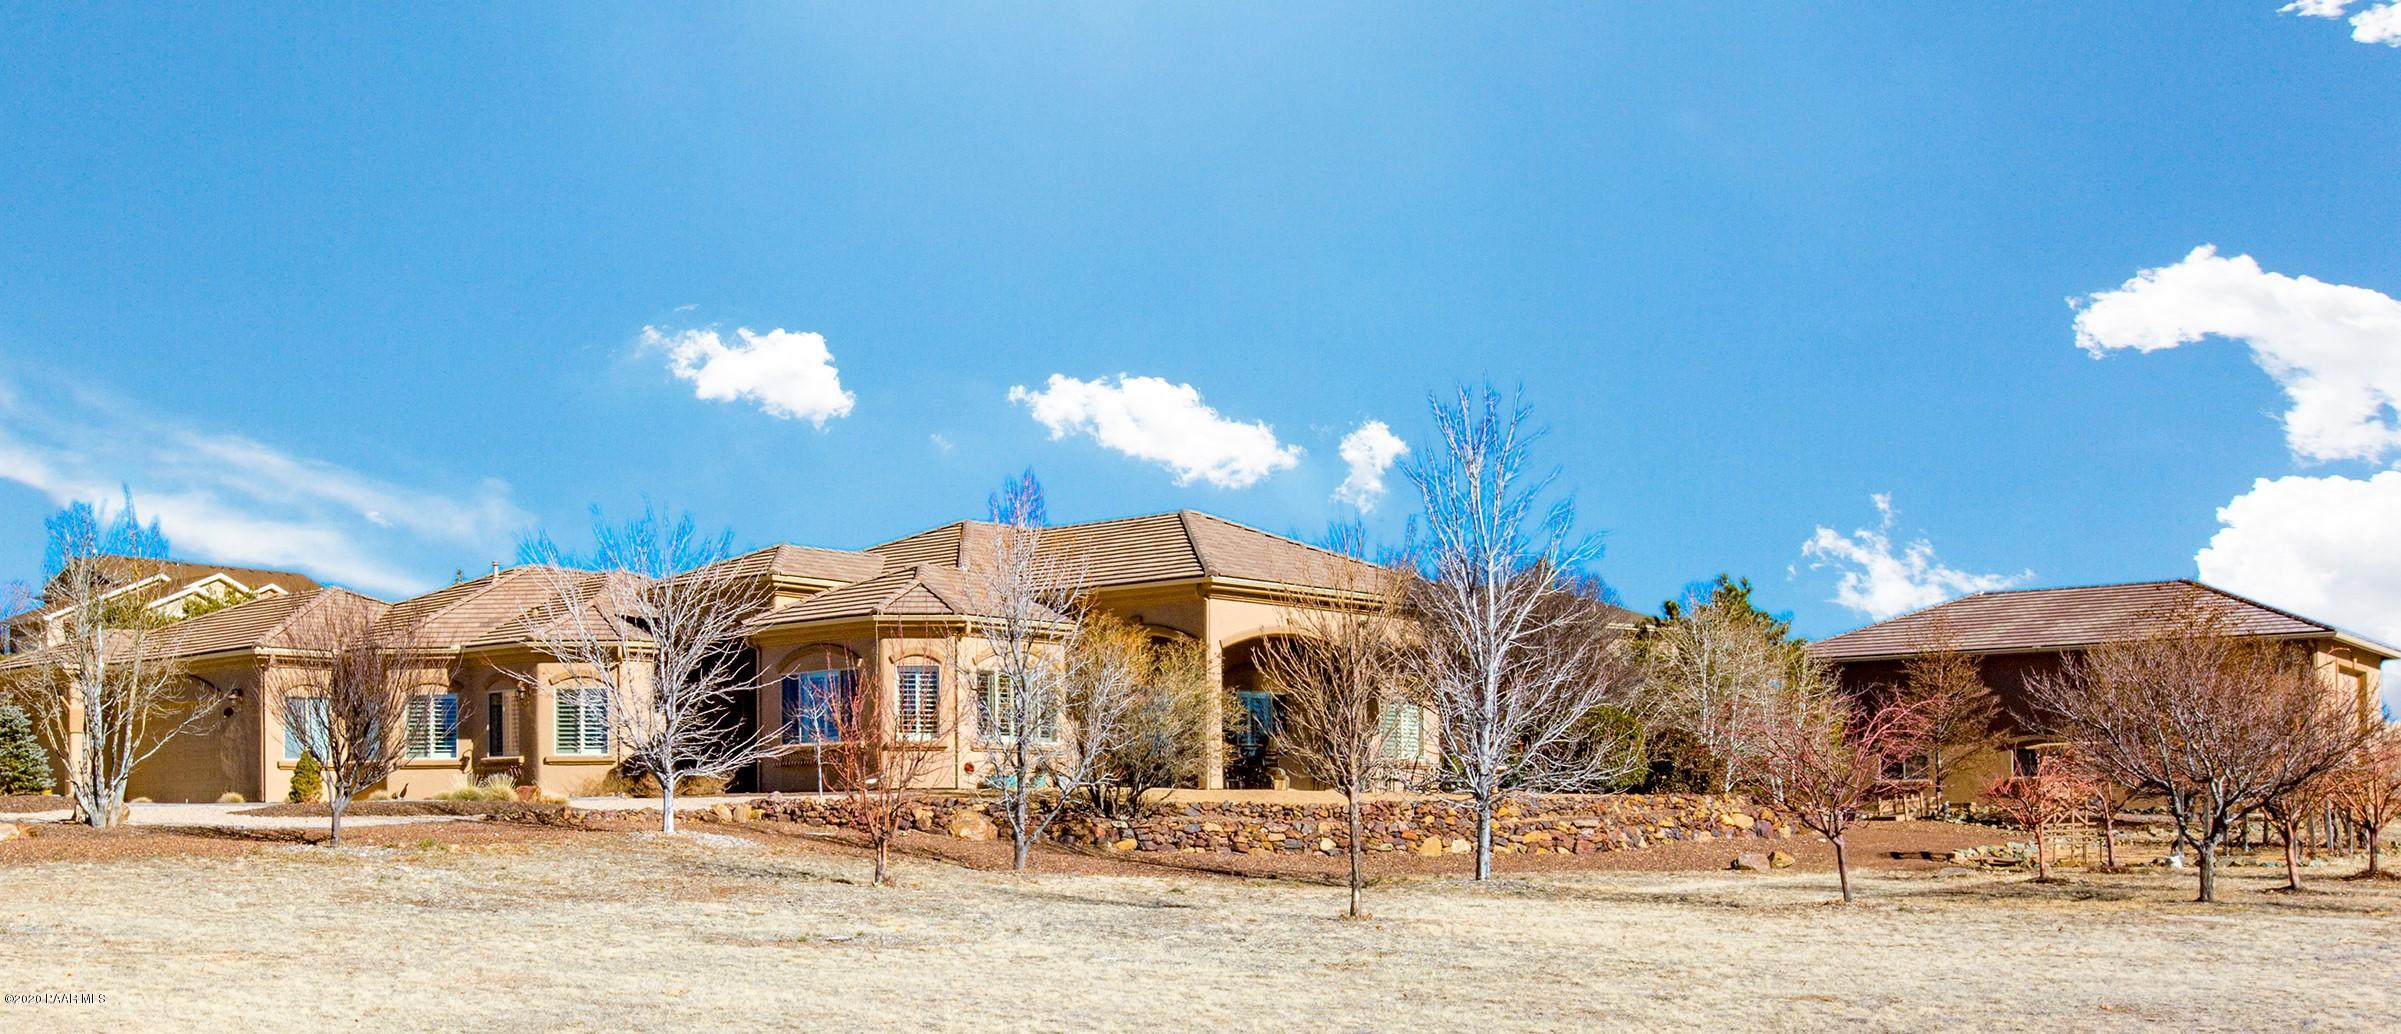 Photo of 11100 Williamson Valley Ranch, Prescott, AZ 86305